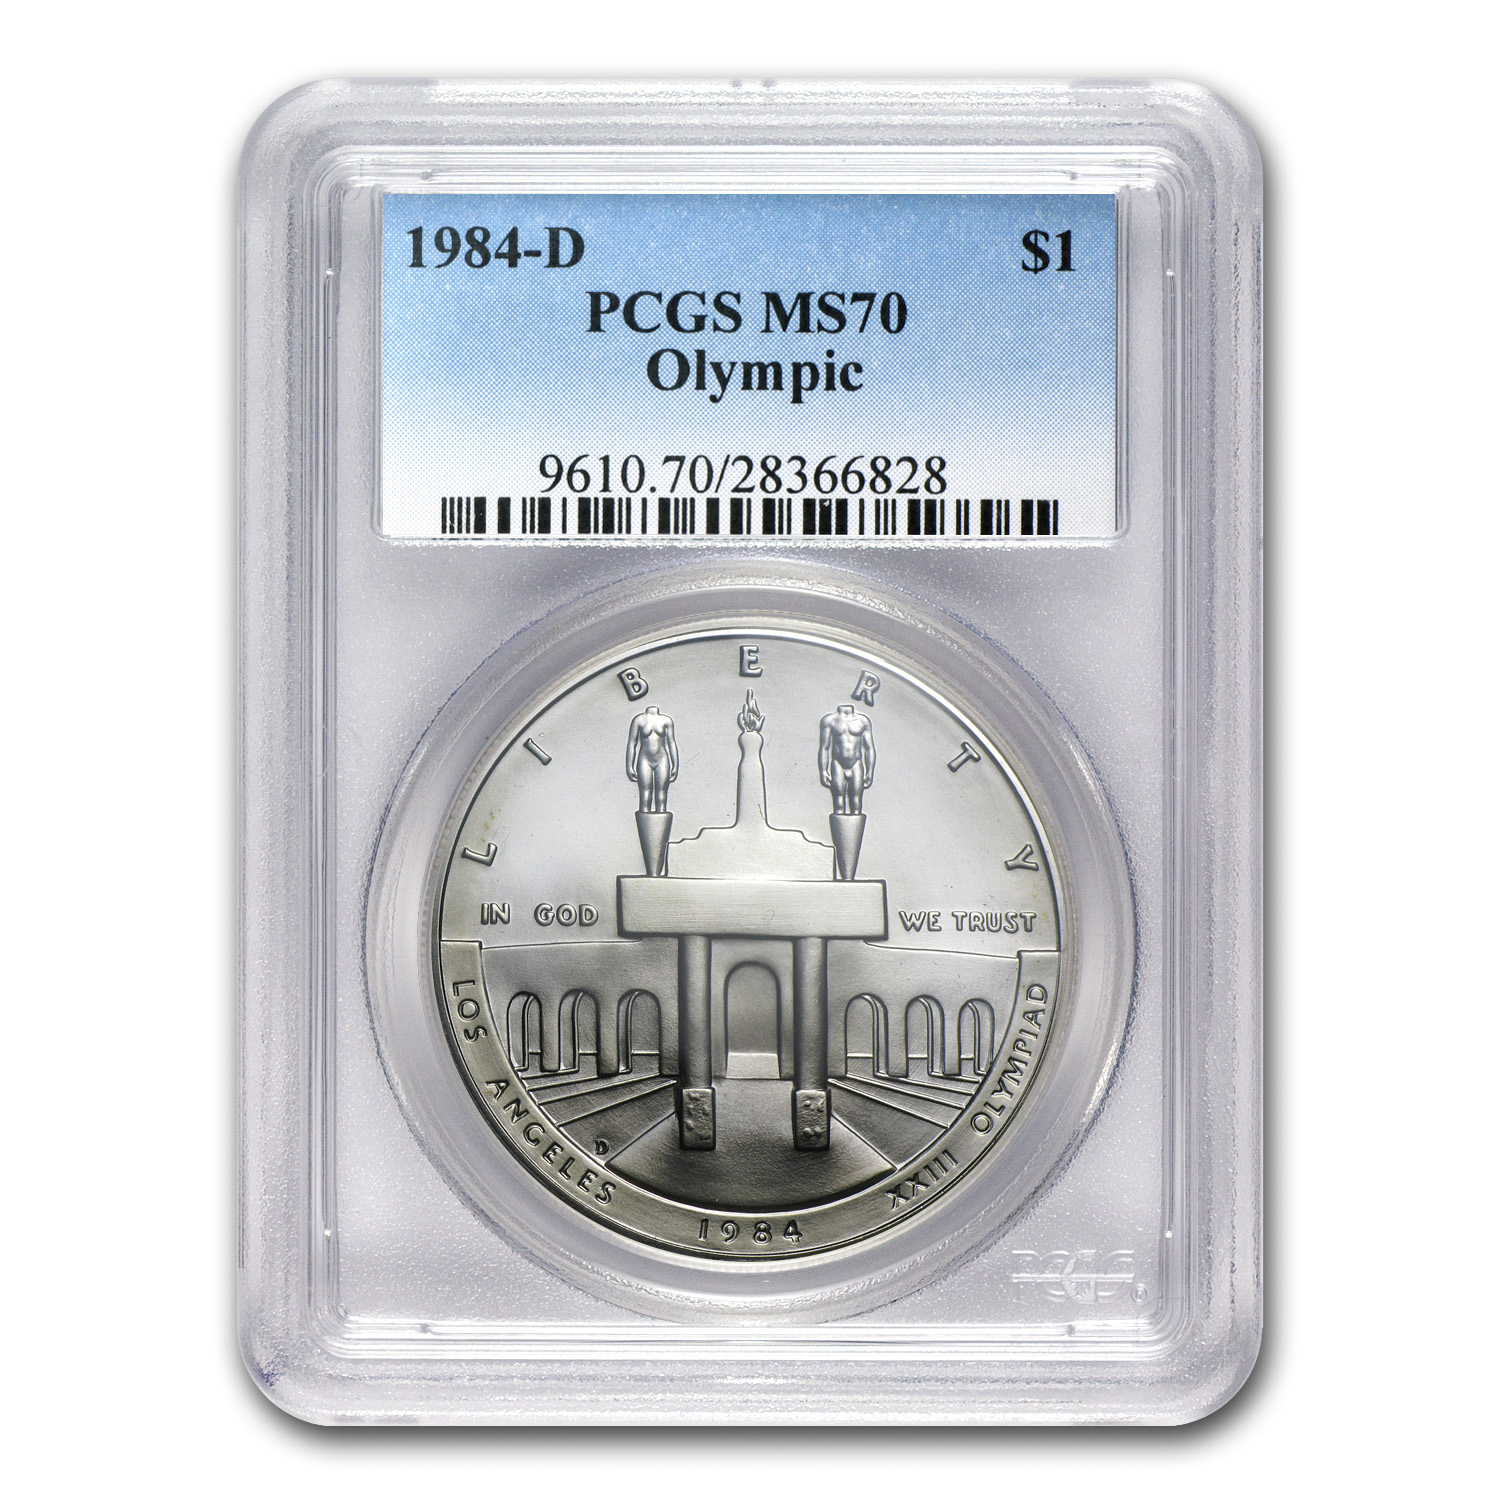 1984-D Olympic $1 Silver Commemorative MS-70 PCGS